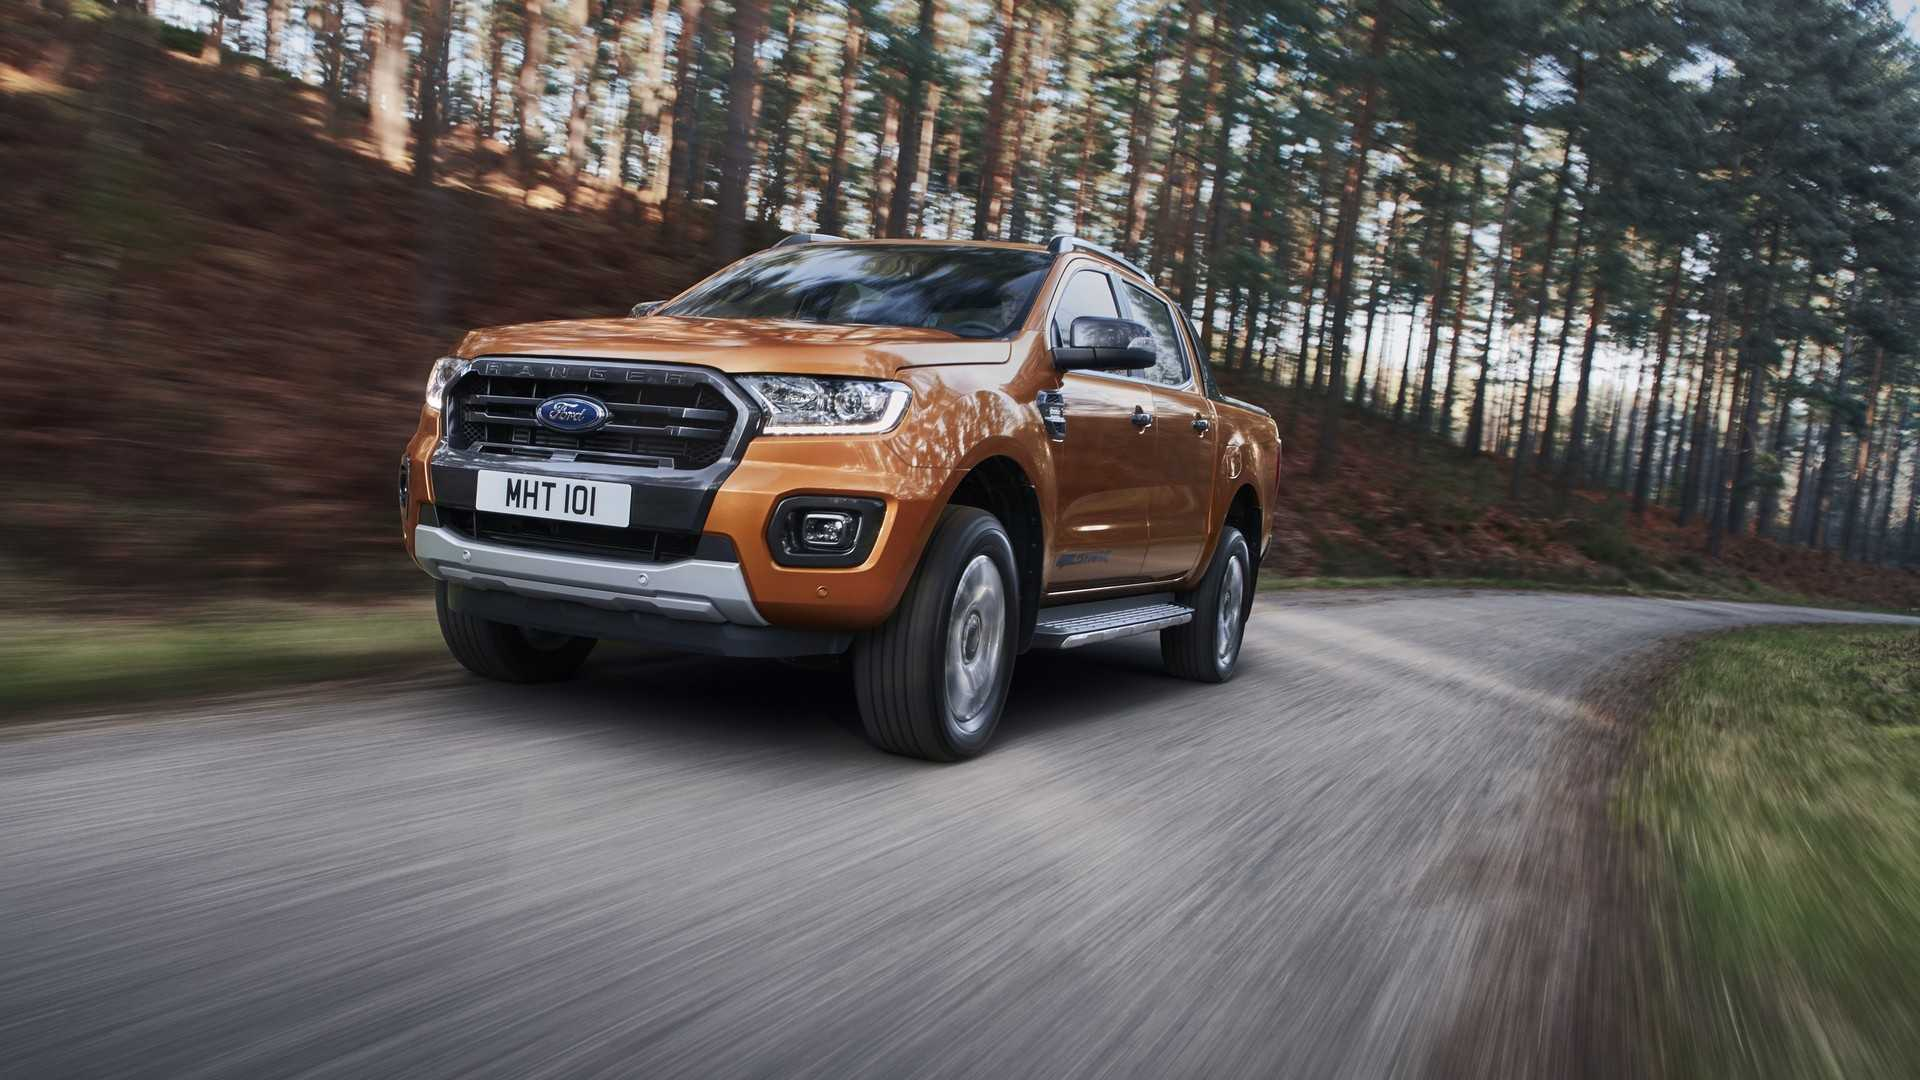 Ford Ranger Refreshed For Europe, Gets New Diesel Engine